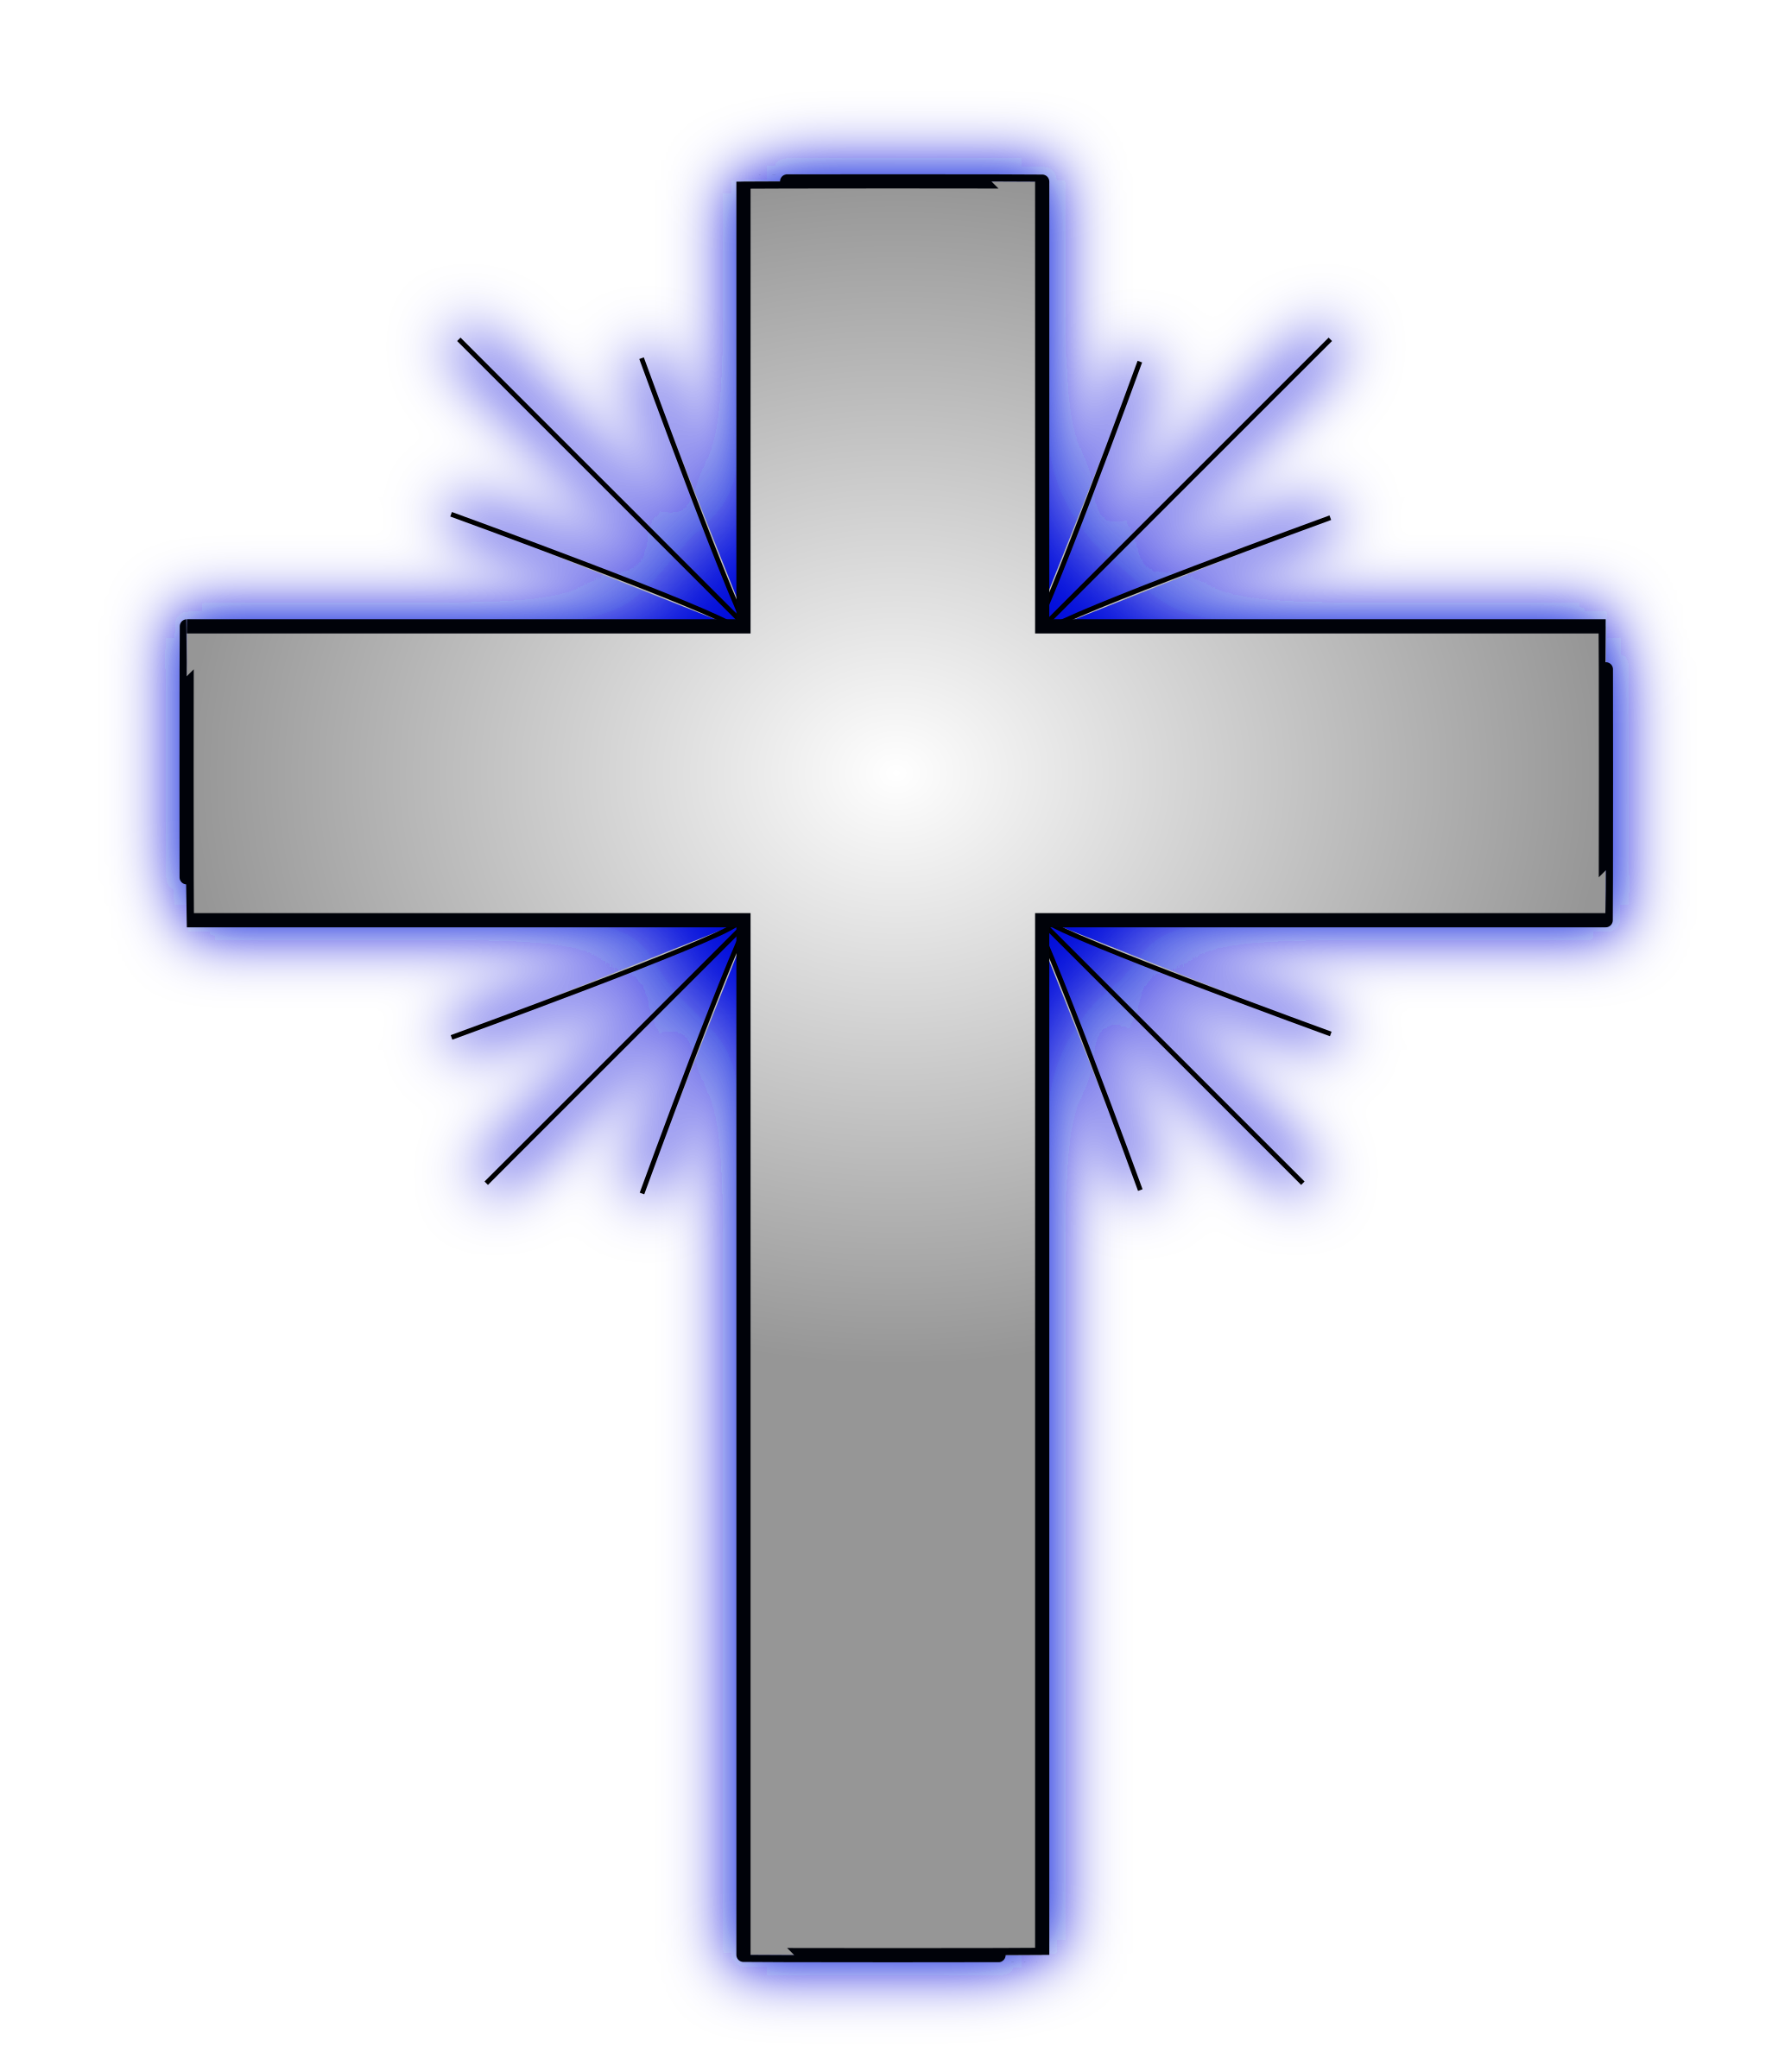 Clipart cross free clip freeuse download Catholic Cross Clipart at GetDrawings.com | Free for personal use ... clip freeuse download